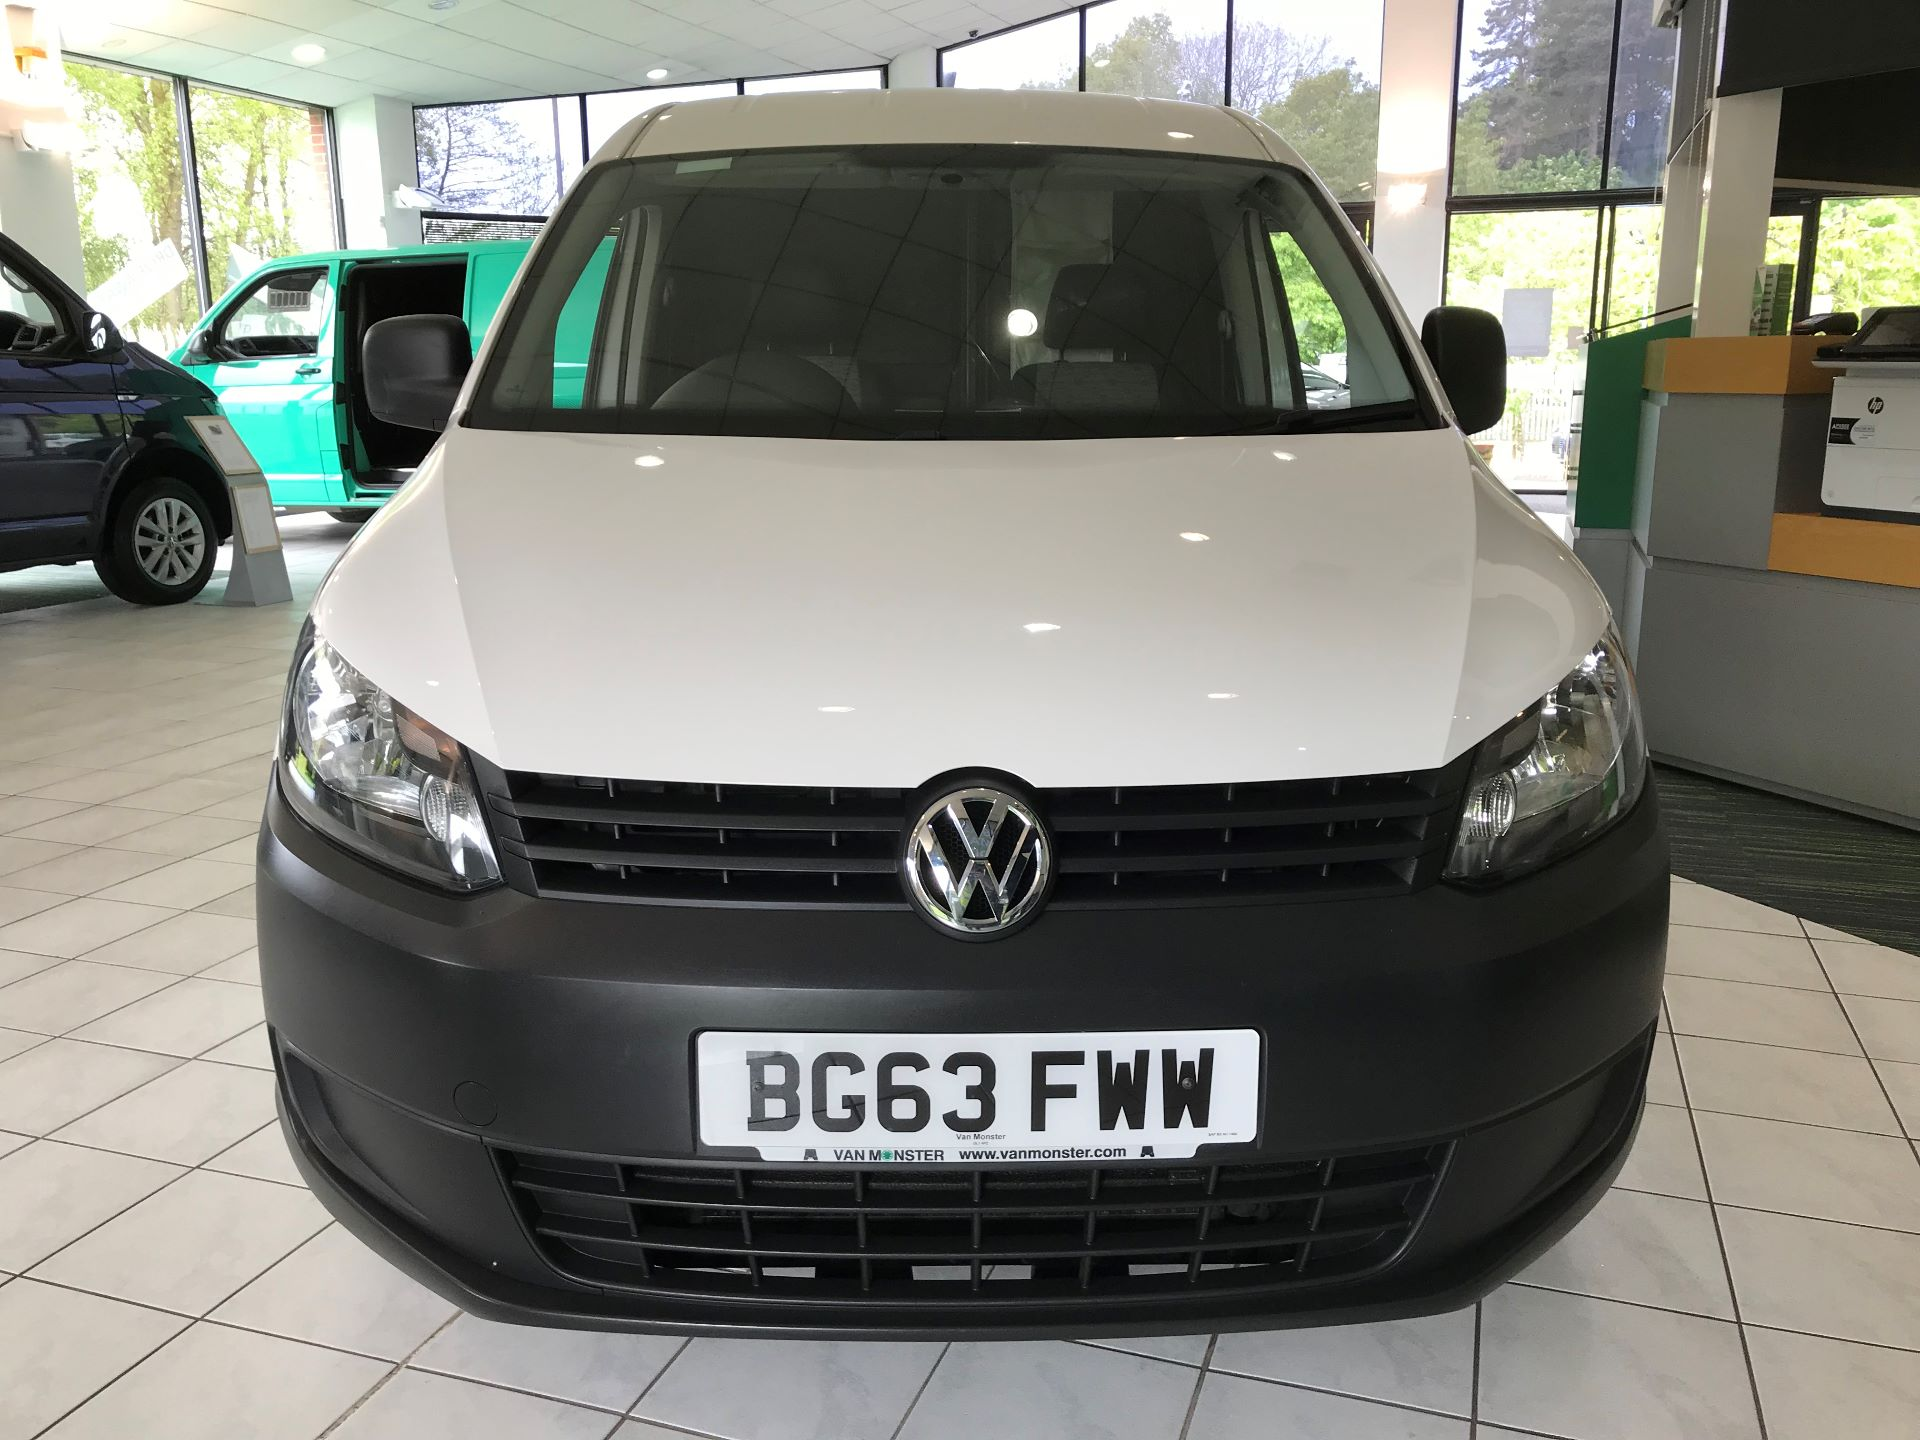 2014 Volkswagen Caddy Maxi 2.0 102PS BLUEMOTION TECH 102 STARTLINE  *VALUE RANGE VEHICLE CONDITION REFLECTED IN PRICE* (BG63FWW) Image 20